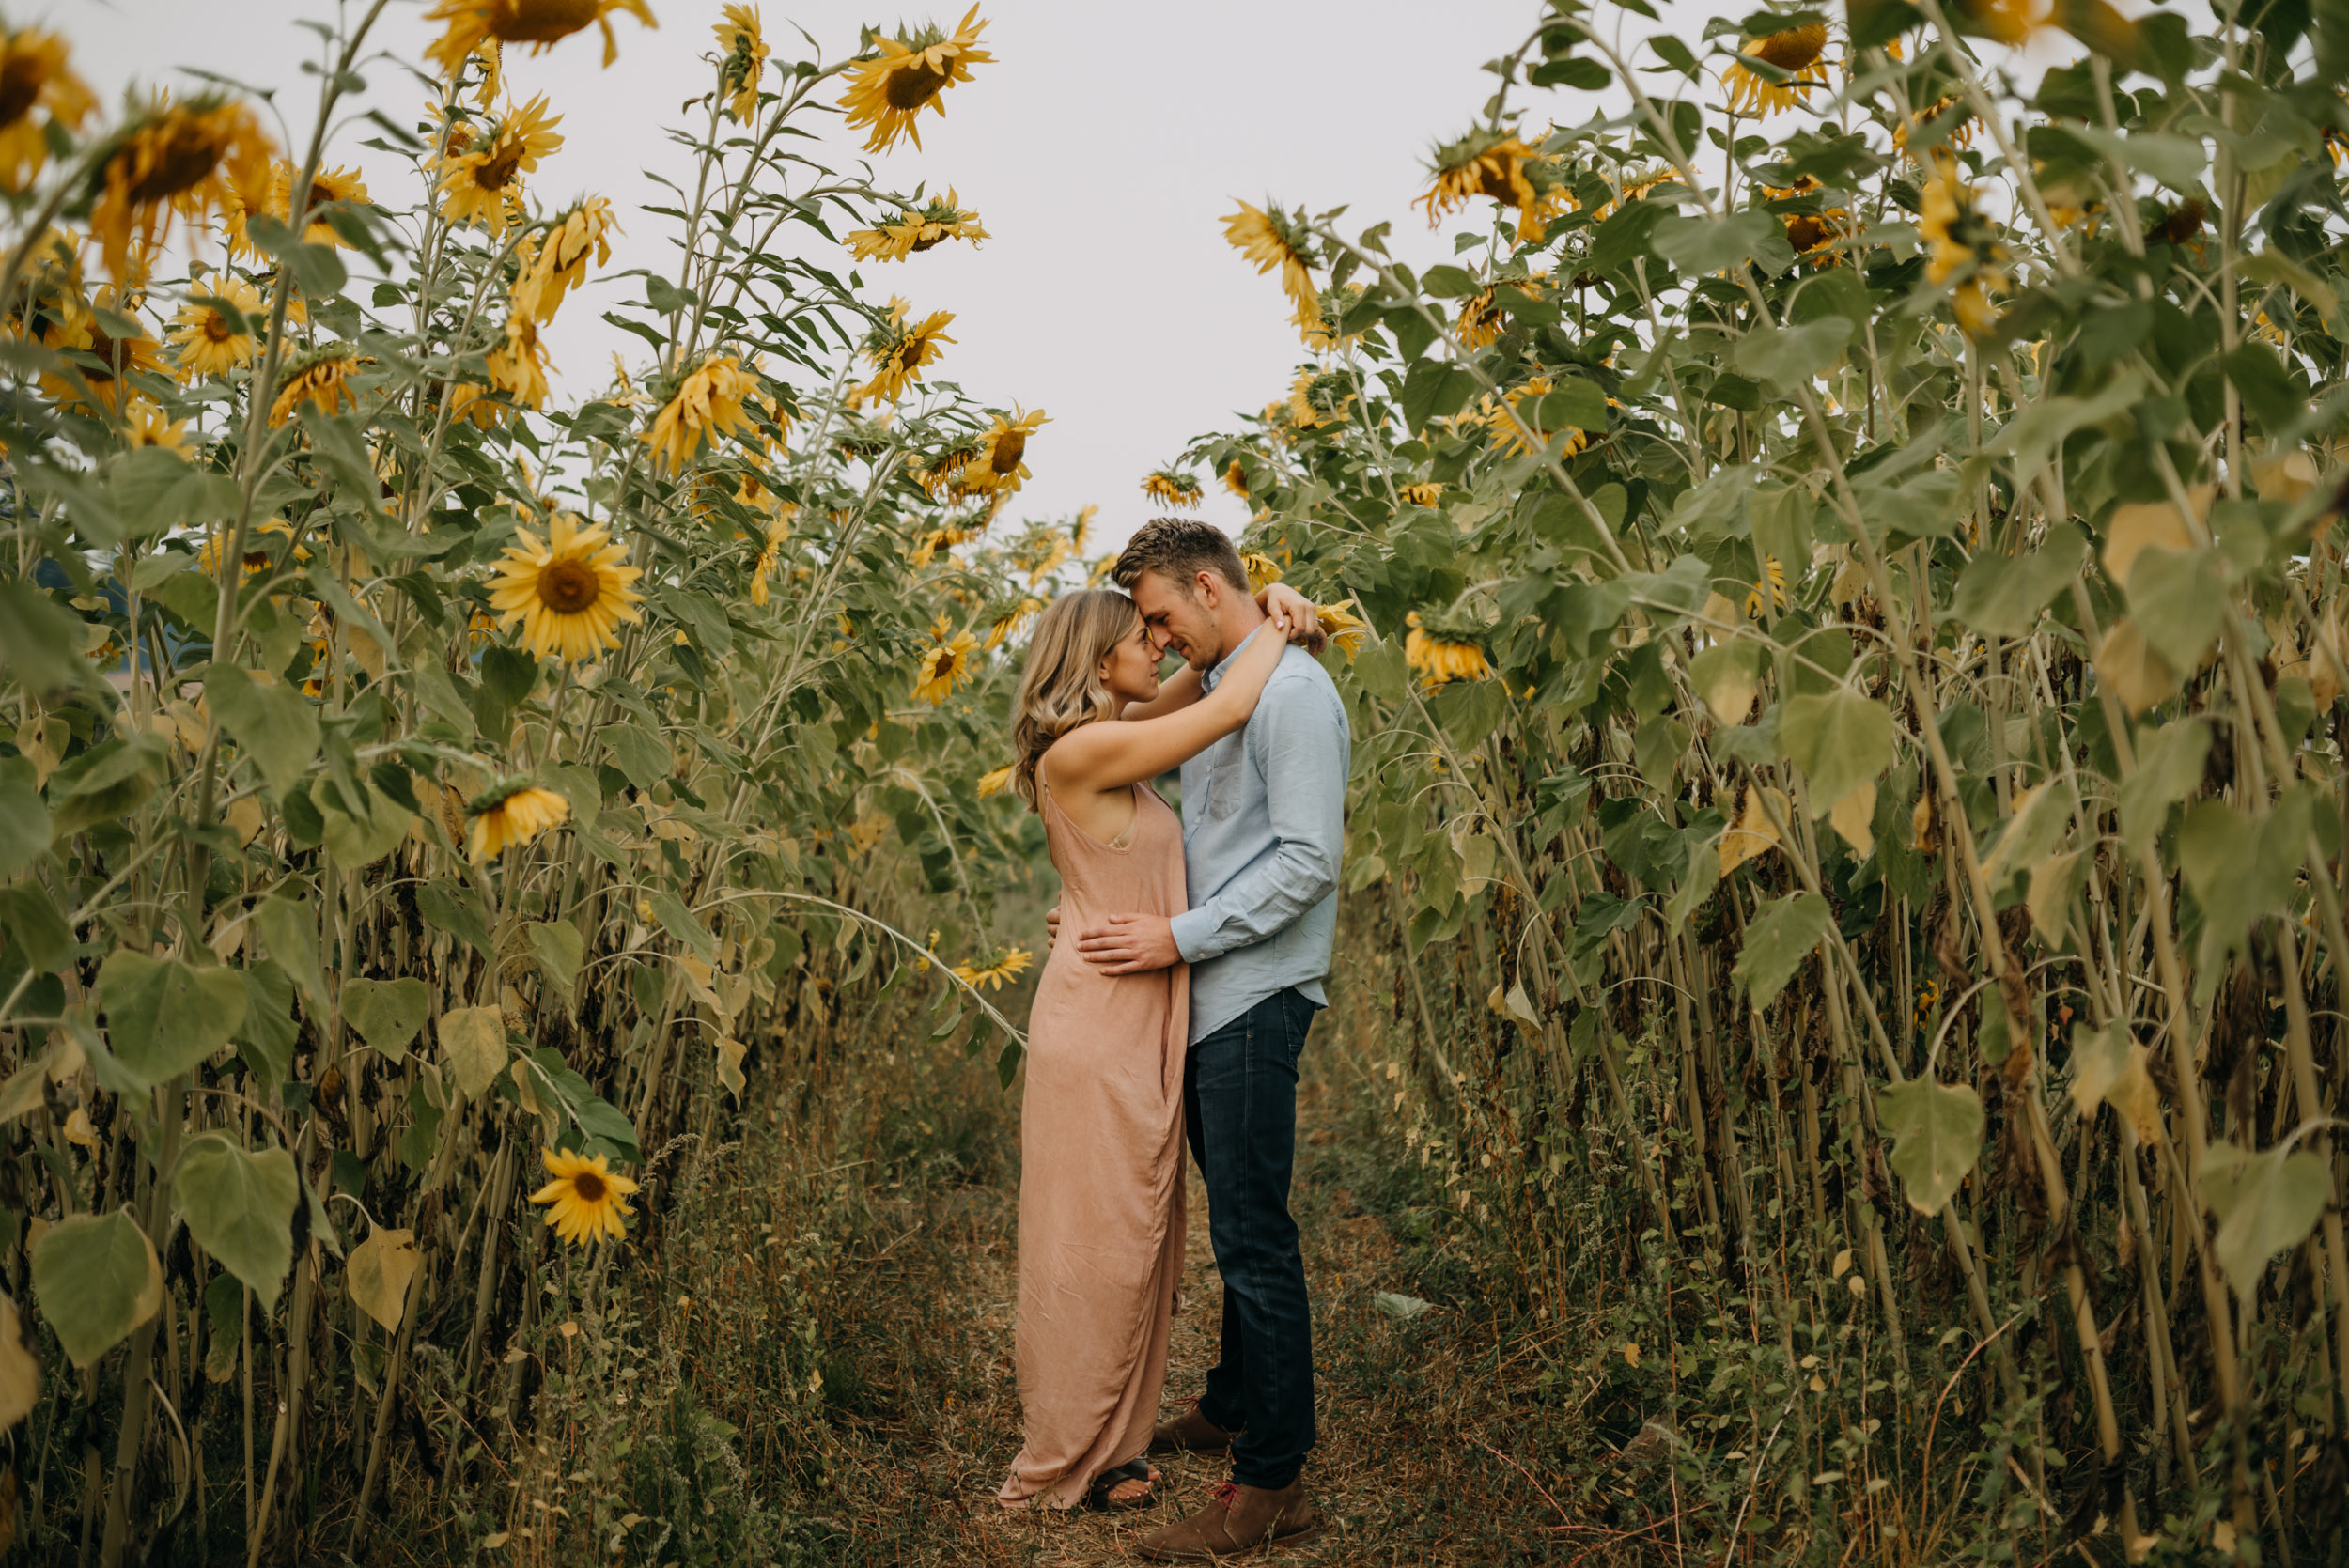 Sauvie-Island-Oregon-Sunflower-Portland-Engagement-3875.jpg